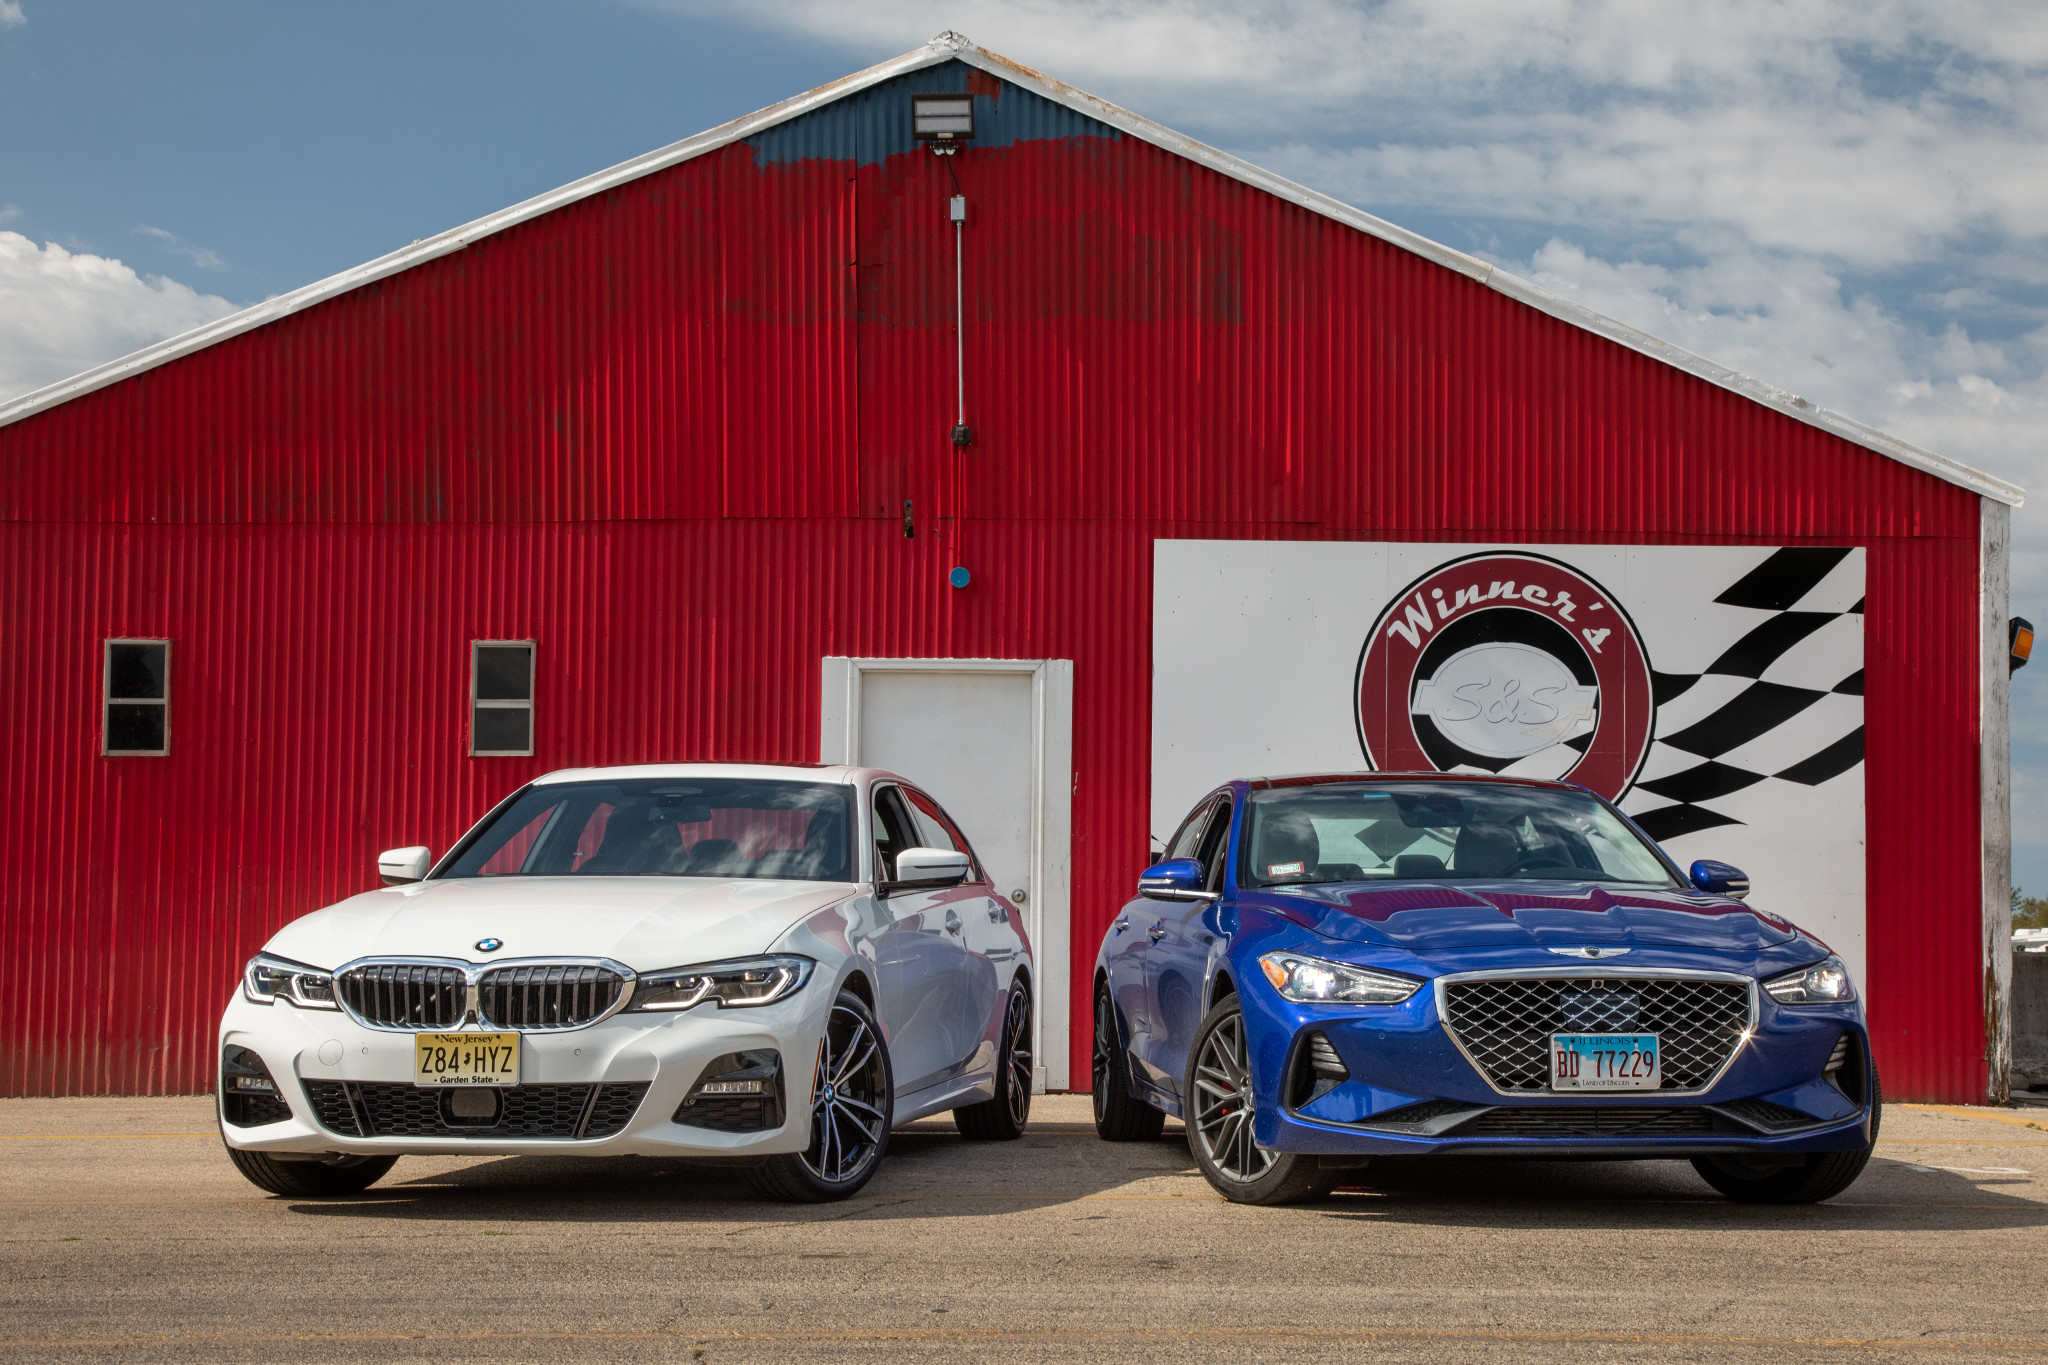 Genesis G70 Vs. BMW 3 Series: Battle of the Best?